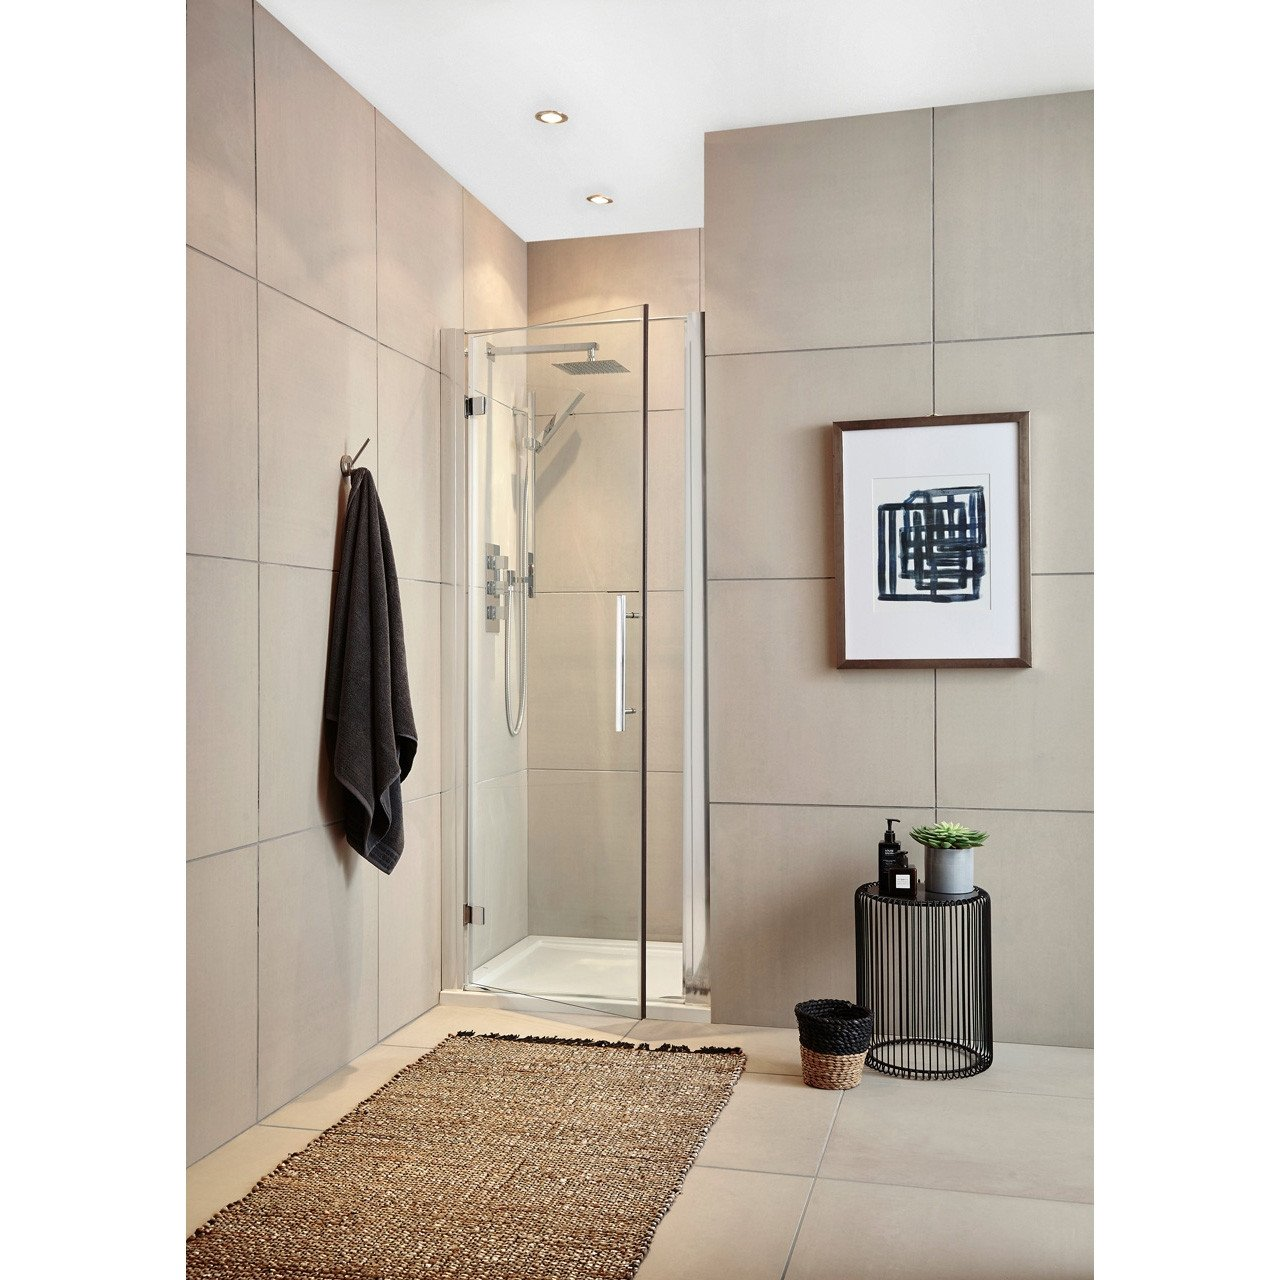 Premier 700mm Hinged Door 8mm Thick - MH70-E8